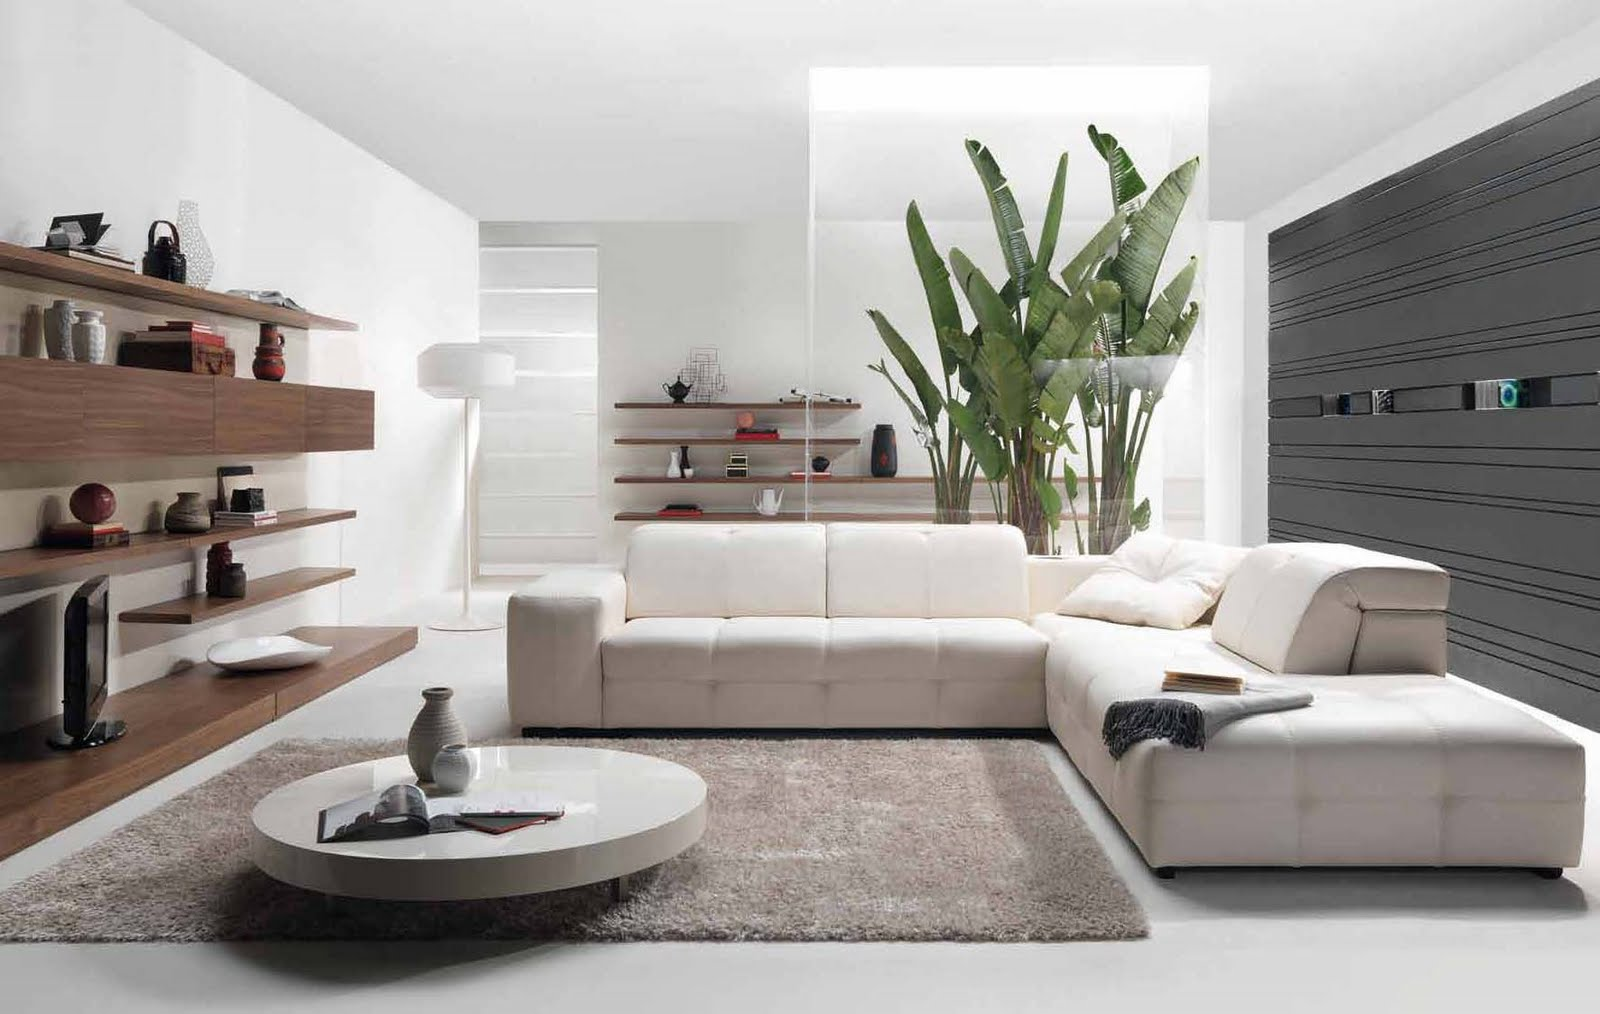 Future House Design: Modern Living Room Interior Design Styles 2010 by